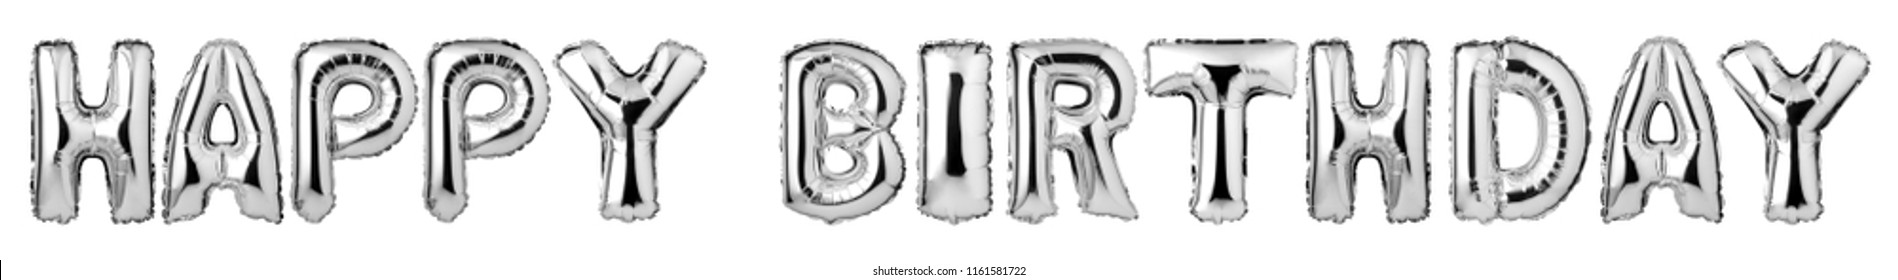 Upper case letters HAPPY BIRTHDAY from silver balloons